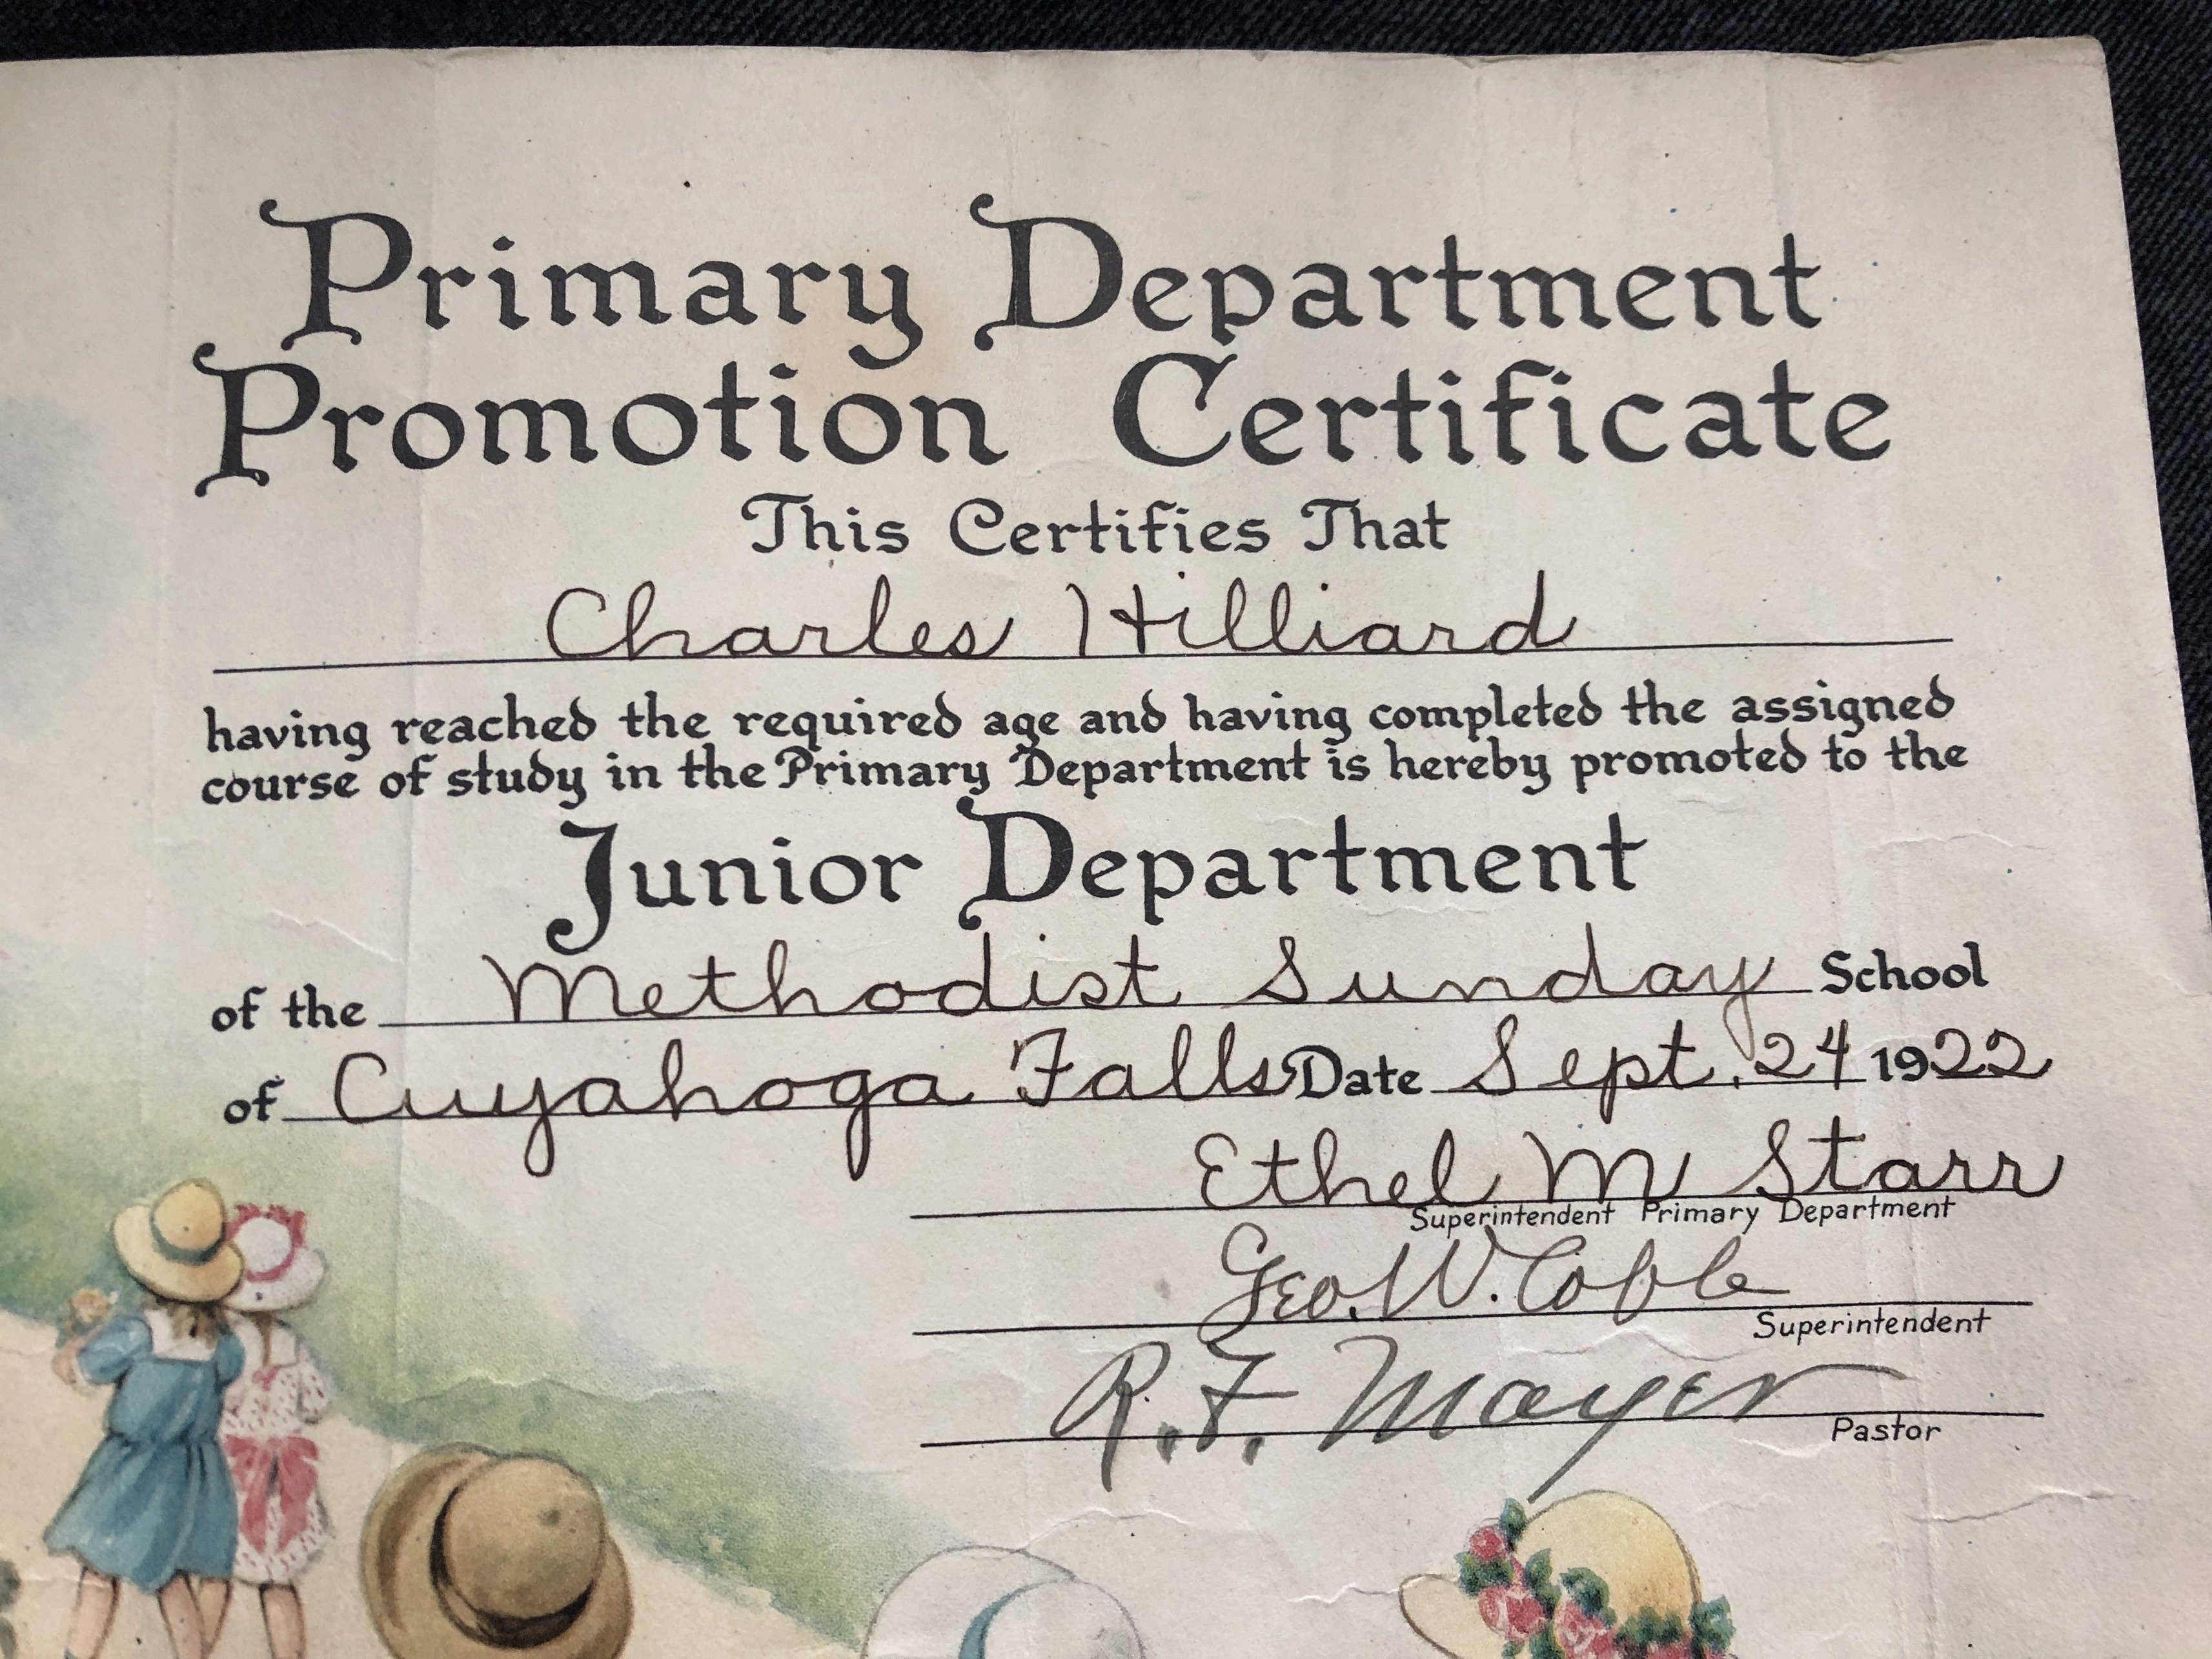 Sunday School Promotion Certificates New 1922 Primary Dept Promotion Certificate Charles Hilliard